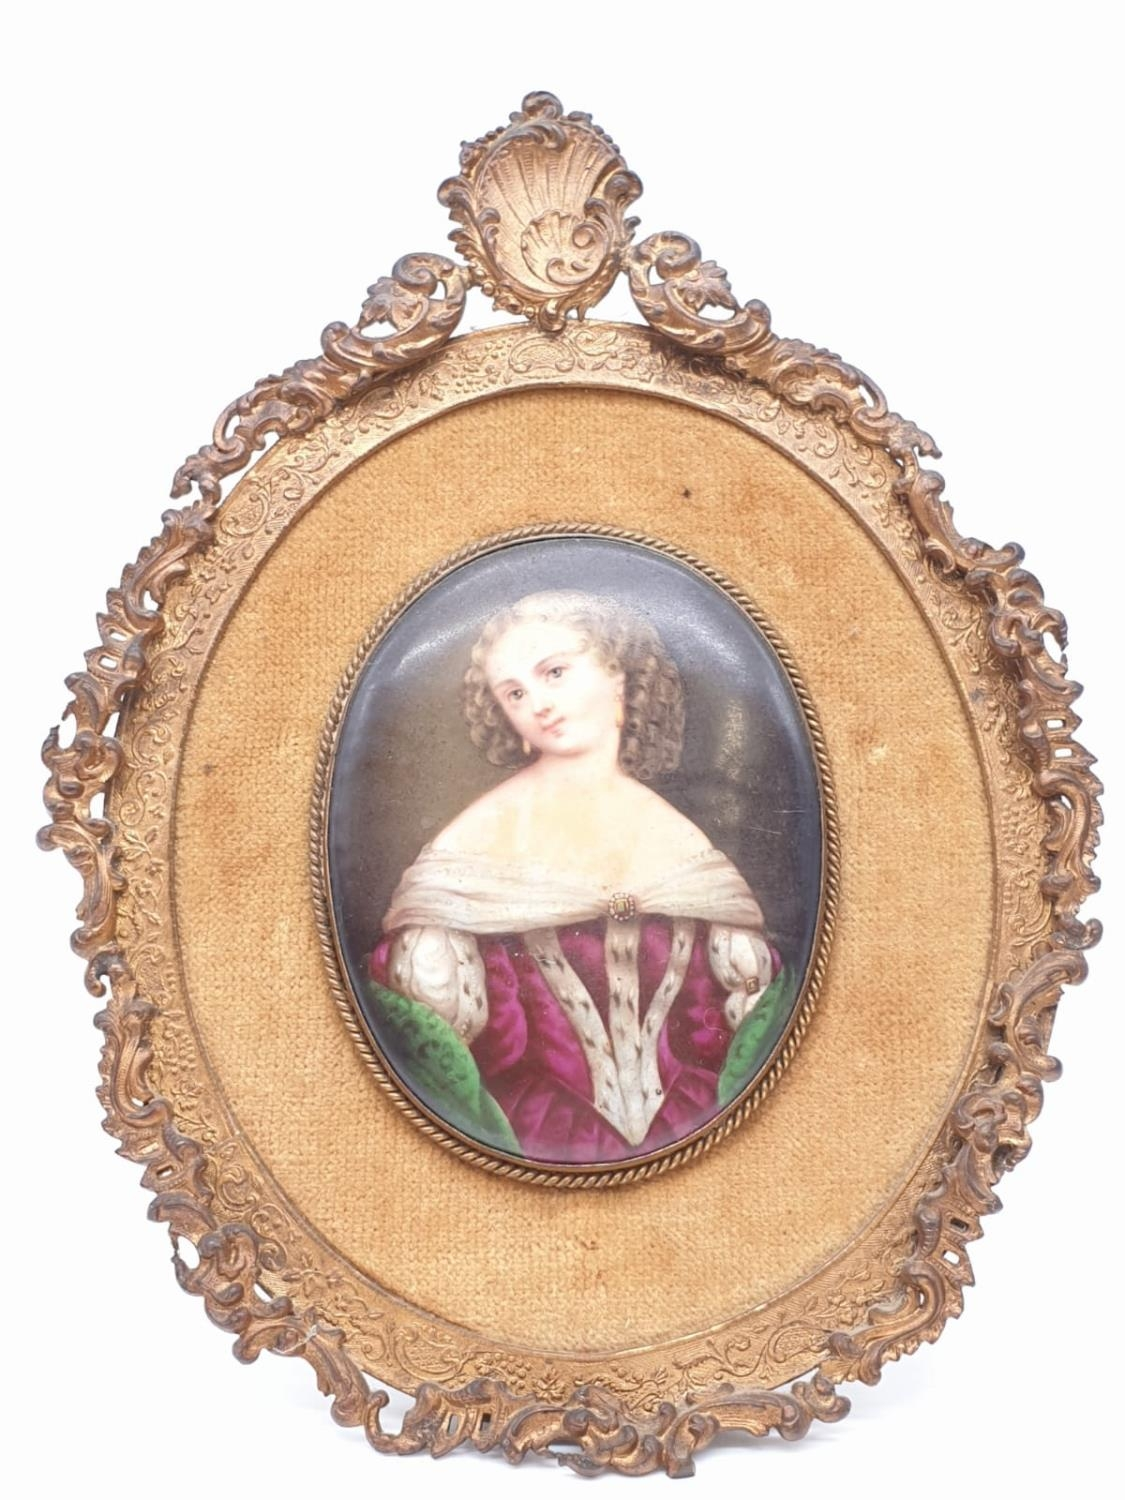 An 18th century porcelain miniature of an Ermine wearing lady in ornate frame, 8x6cm